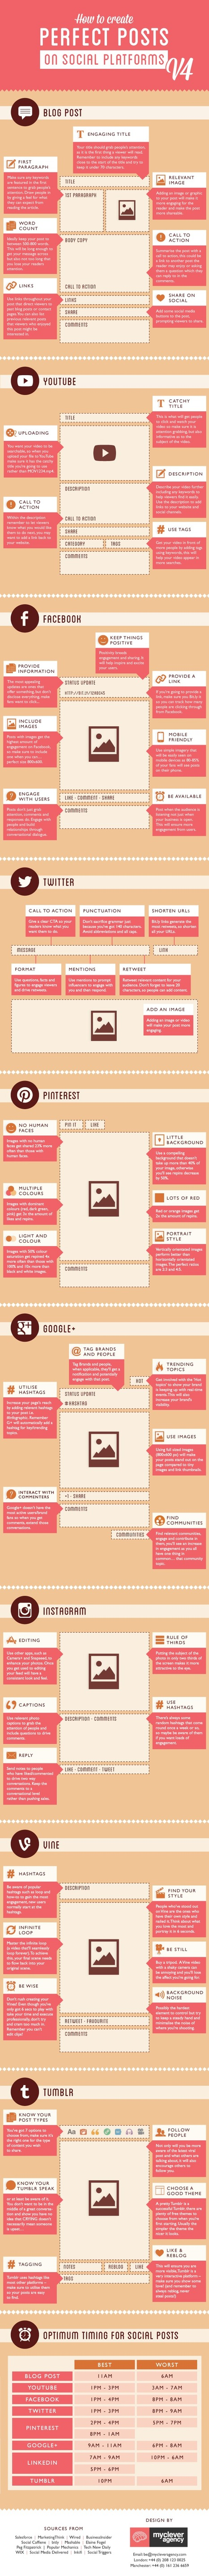 The Art of Creating Perfect Social Media Posts - infographic | language and technology | Scoop.it